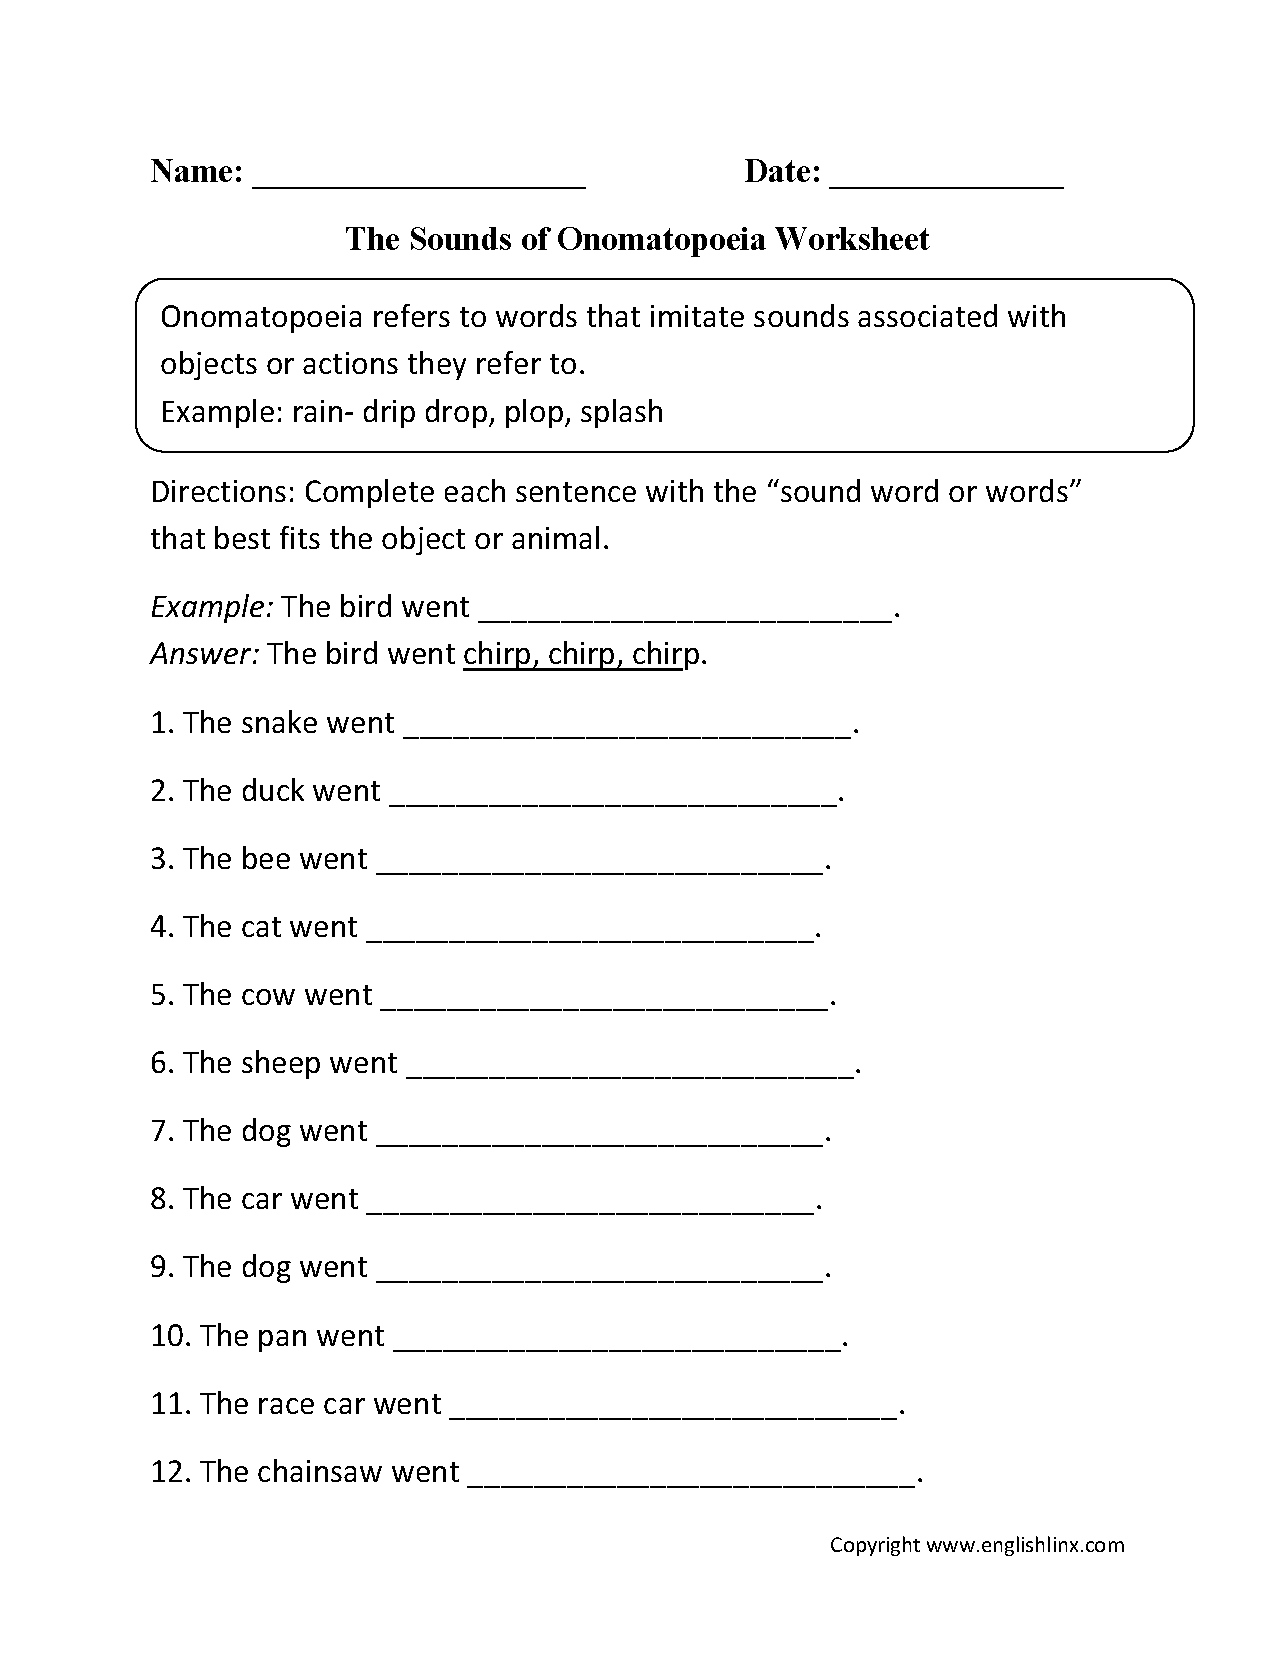 Aldiablosus  Scenic Englishlinxcom  Onomatopoeia Worksheets With Handsome Worksheet With Comely Class  Maths Worksheets Also Cause And Effect Essay Worksheets In Addition Analogies Worksheets Th Grade And Label Parts Of A Cell Worksheet As Well As Reading Comprehension For Grade  Free Worksheets Additionally Worksheets To Color From Englishlinxcom With Aldiablosus  Handsome Englishlinxcom  Onomatopoeia Worksheets With Comely Worksheet And Scenic Class  Maths Worksheets Also Cause And Effect Essay Worksheets In Addition Analogies Worksheets Th Grade From Englishlinxcom